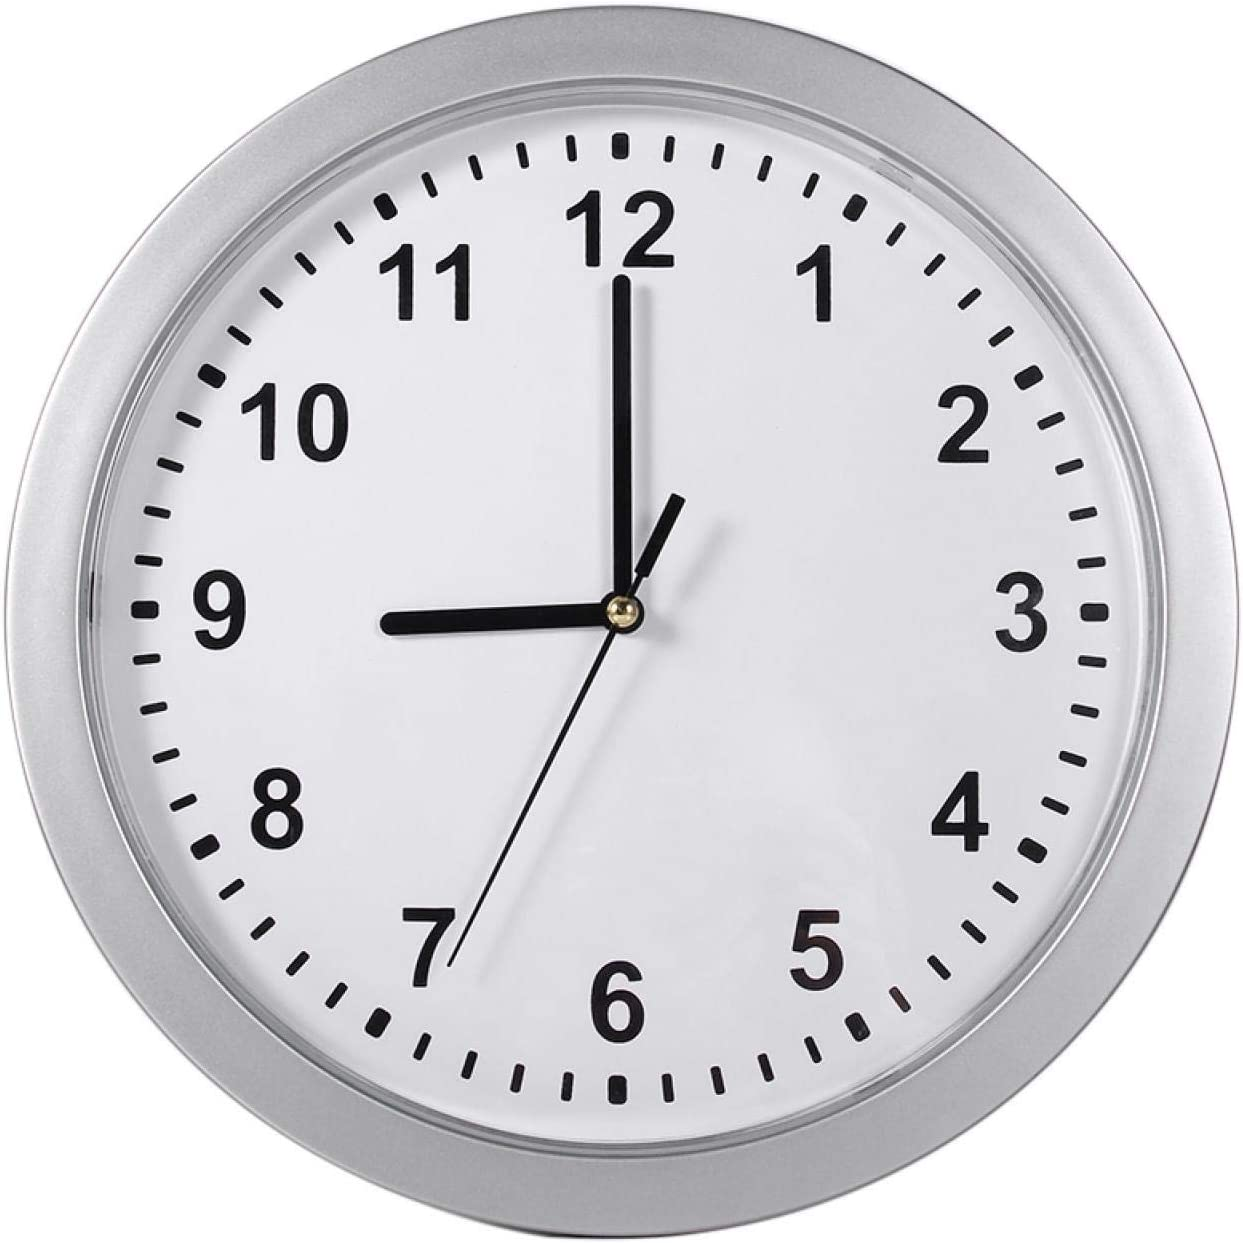 Omabeta Safe Diversion New color Wall Gift Today's only Clock Home for